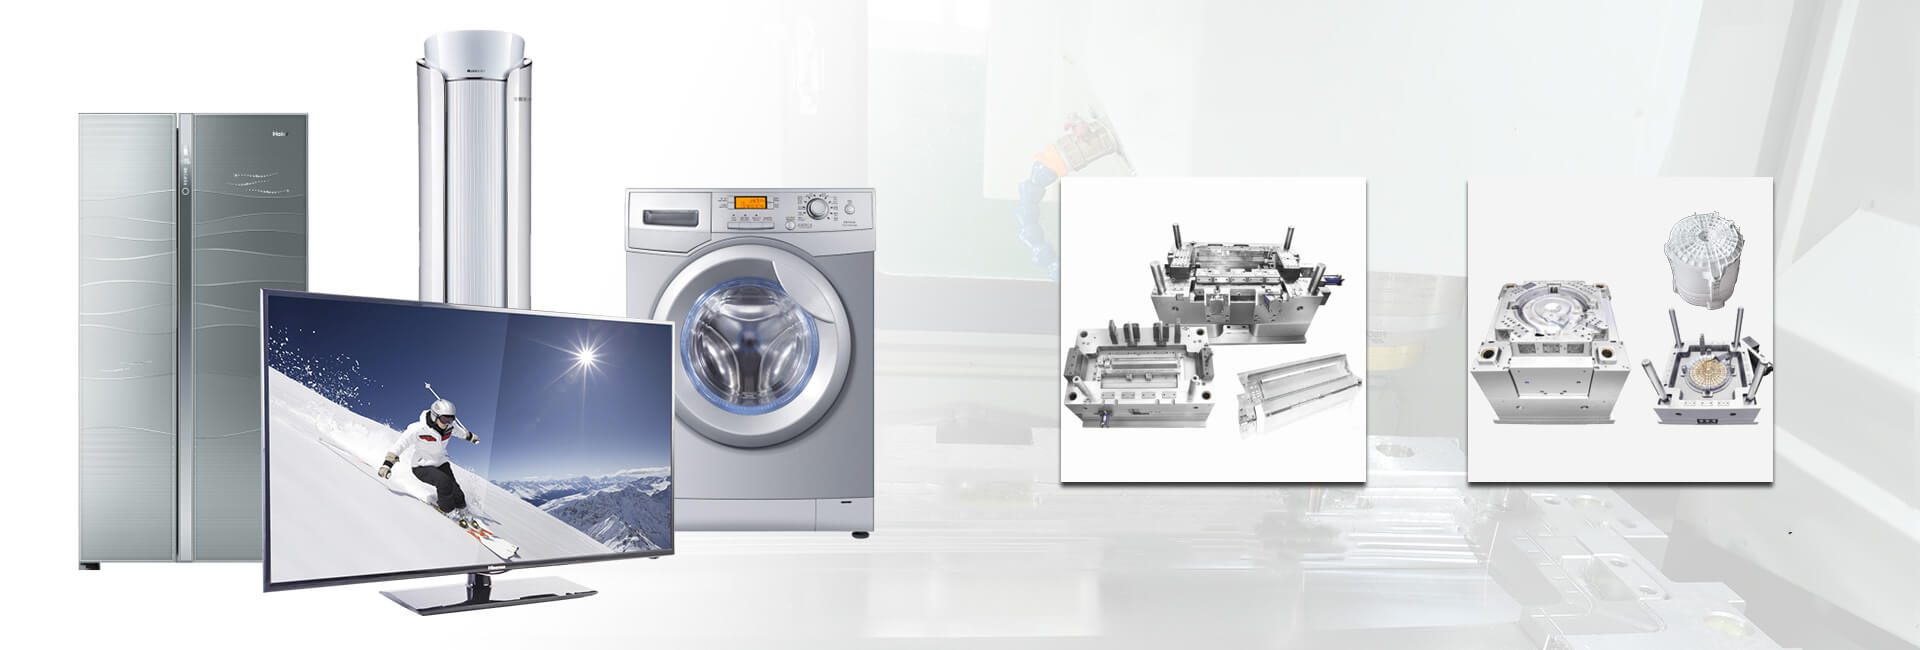 Home Appliance Injection Making Machine Supplier | Successor